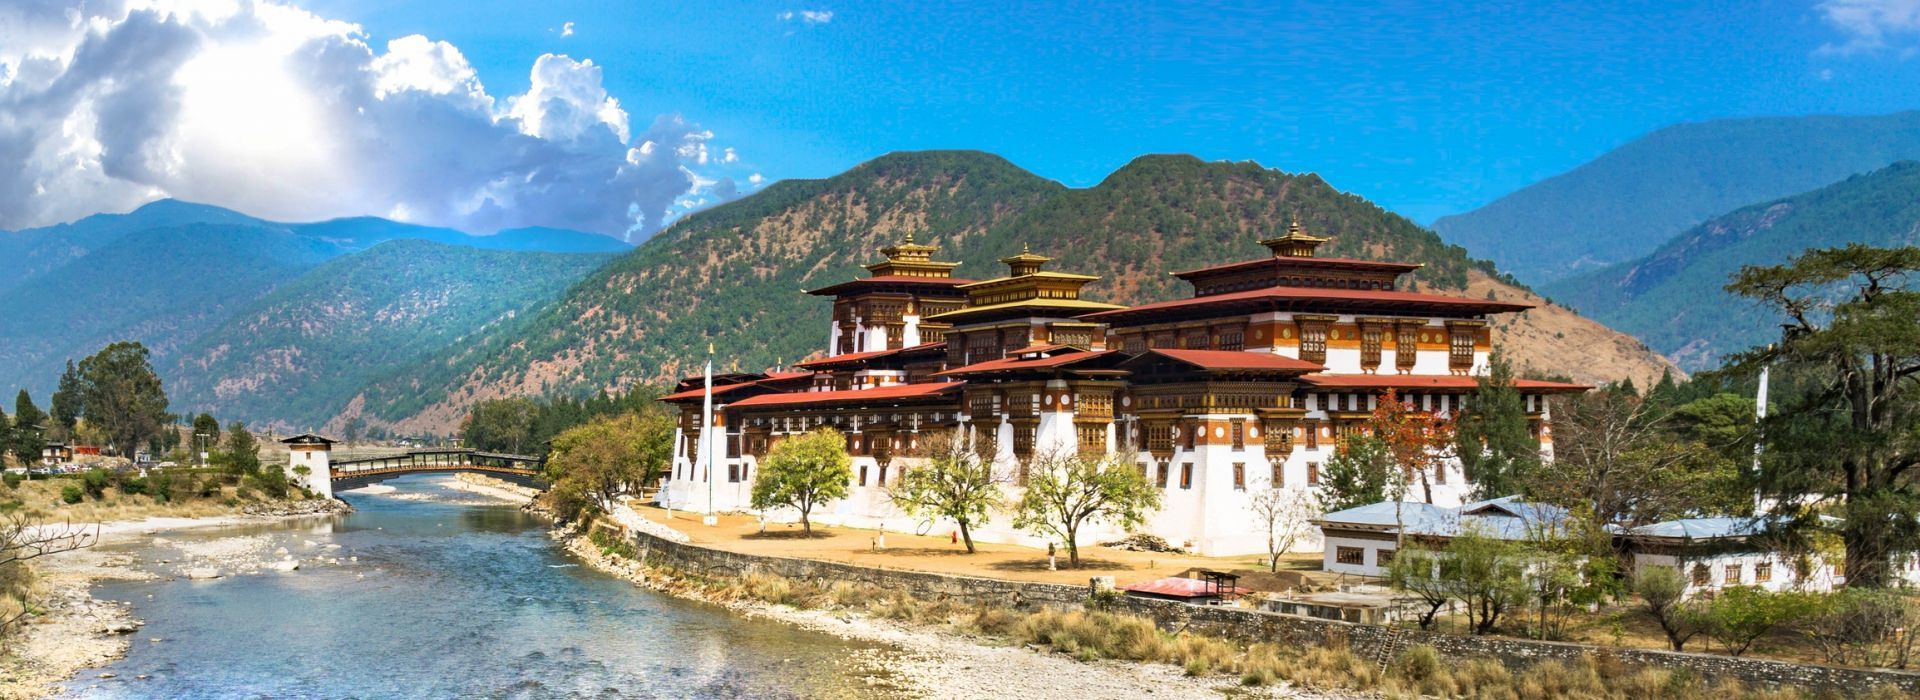 Art and architecture Tours in Tiger's Nest Monastery